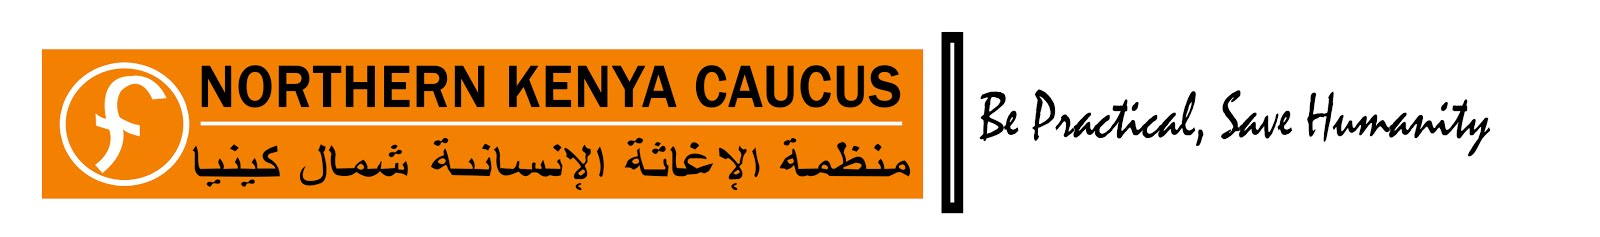 NORTHERN KENYA CAUCUS (NORKENYA)....A NOT-FOR-PROFIT HUMANITARIAN AND DEVELOPMENT ORGANIZATION